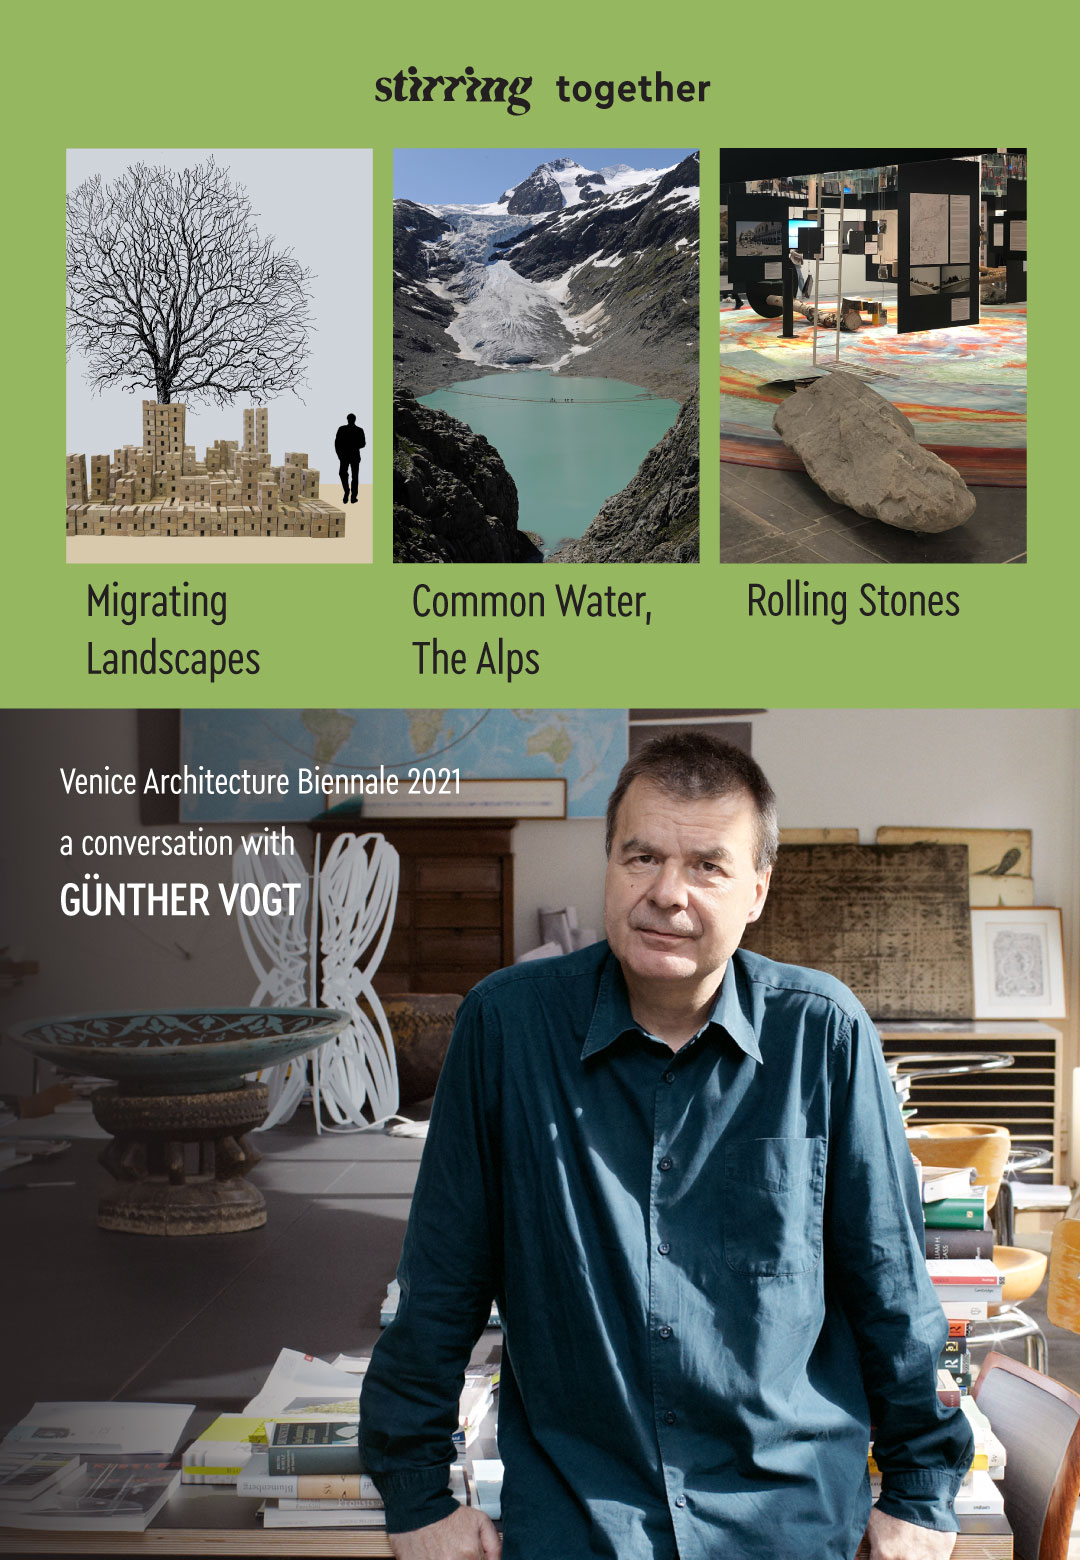 Günther Vogt's exhibitions at the VAB encompass transforming landscapes seen through three basal elements, stone, water, and vegetation | Rolling Stones, Migrating Landscapes, Common Water – The Alps | Günther Vogt | STIRworld